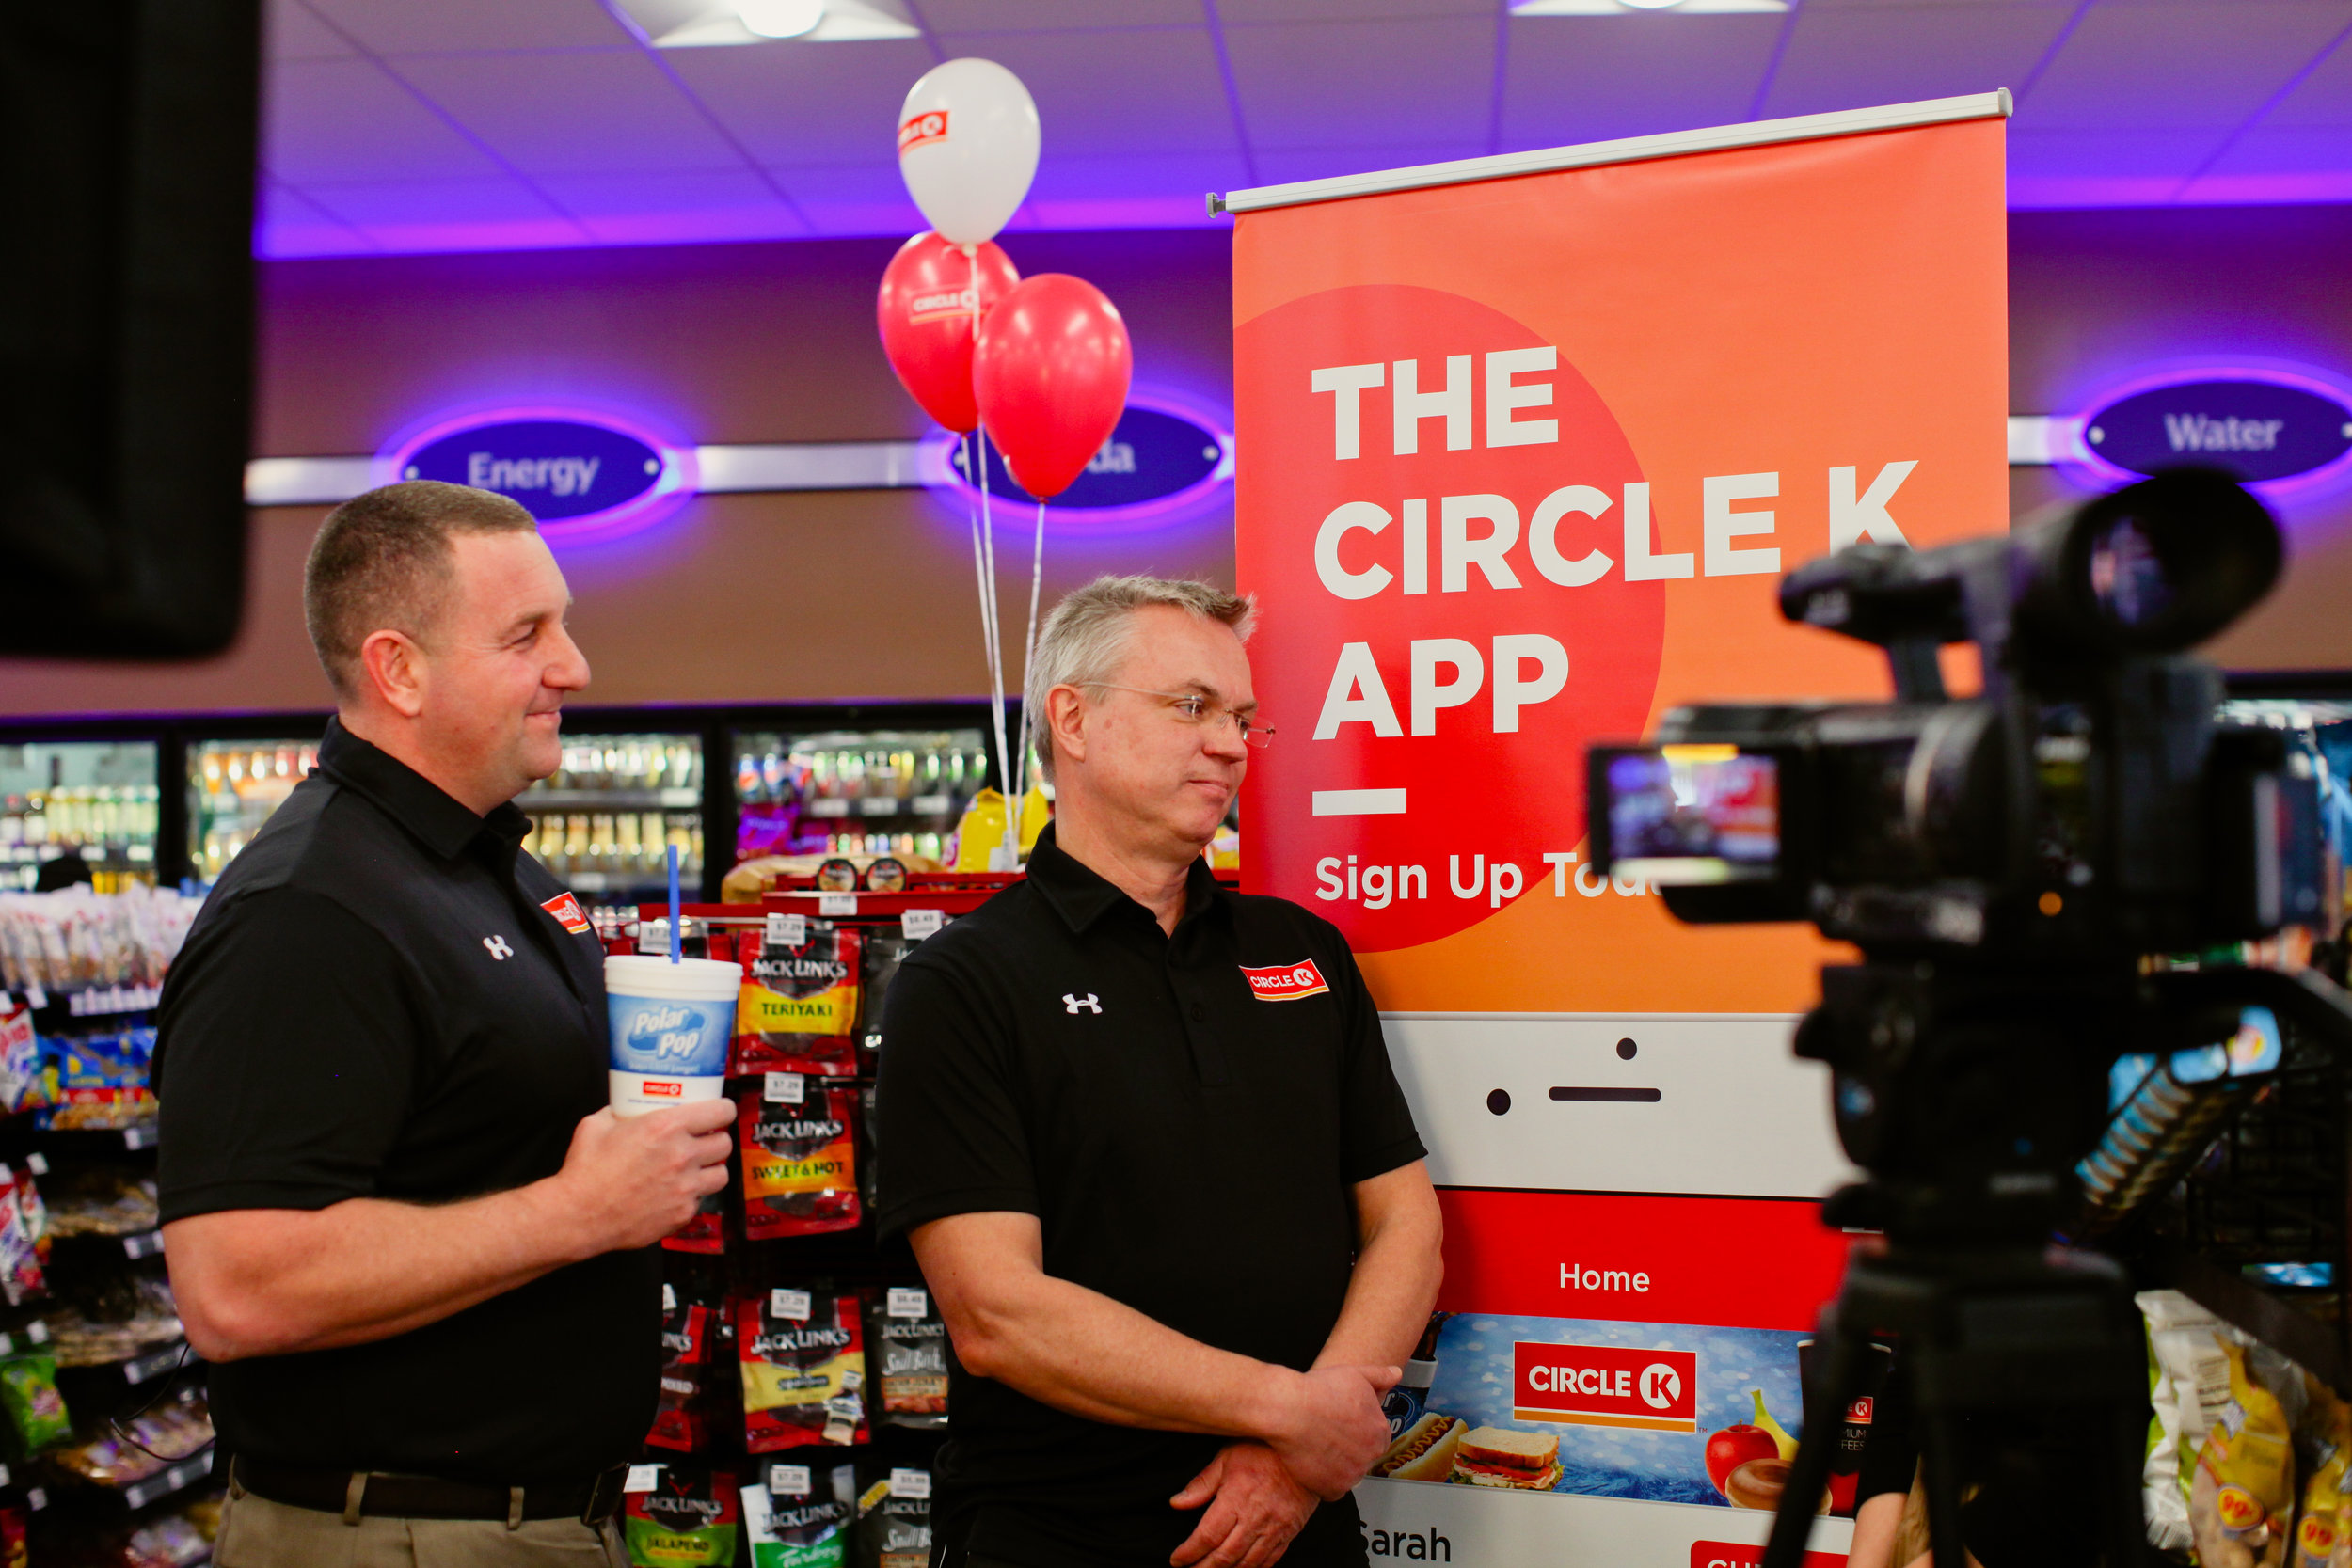 circle-k-grand-opening-savannah-georgia-executive-media-interview-approach-marketing